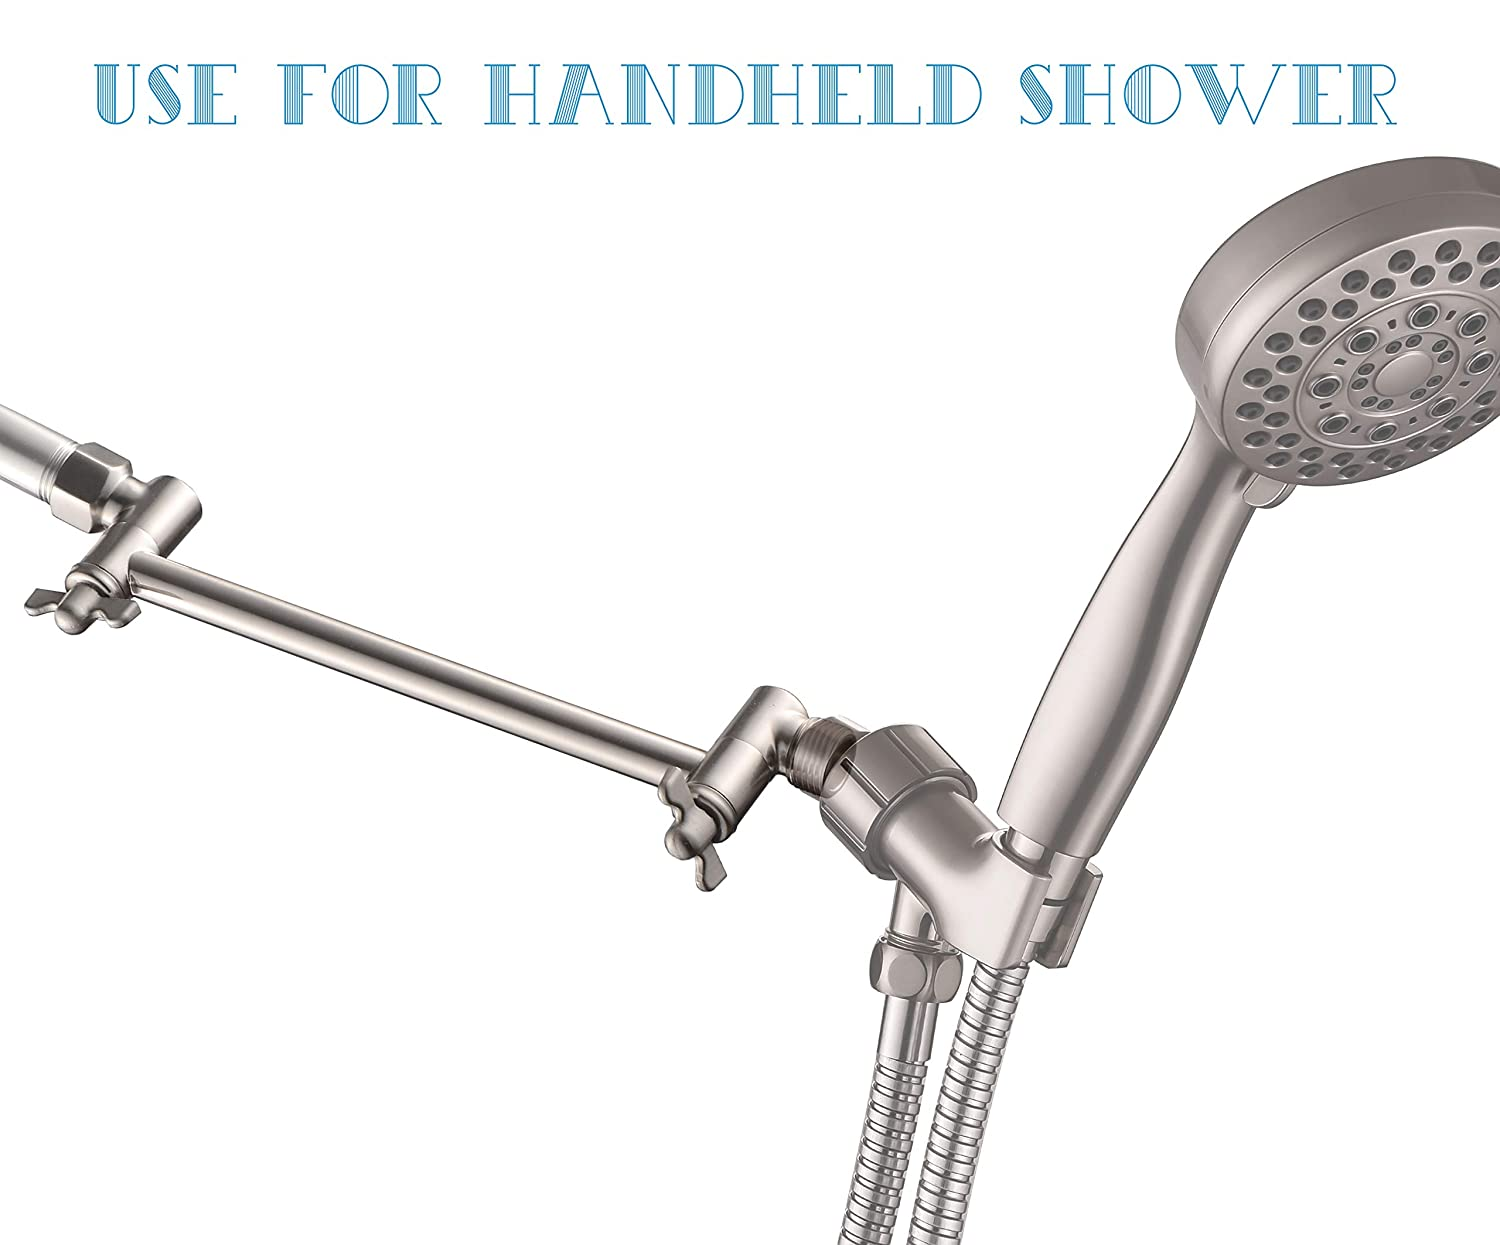 1//2 Pipe NPT Standard FATCAMEL 12-inch Brushed Nickel Shower Arm with Flange